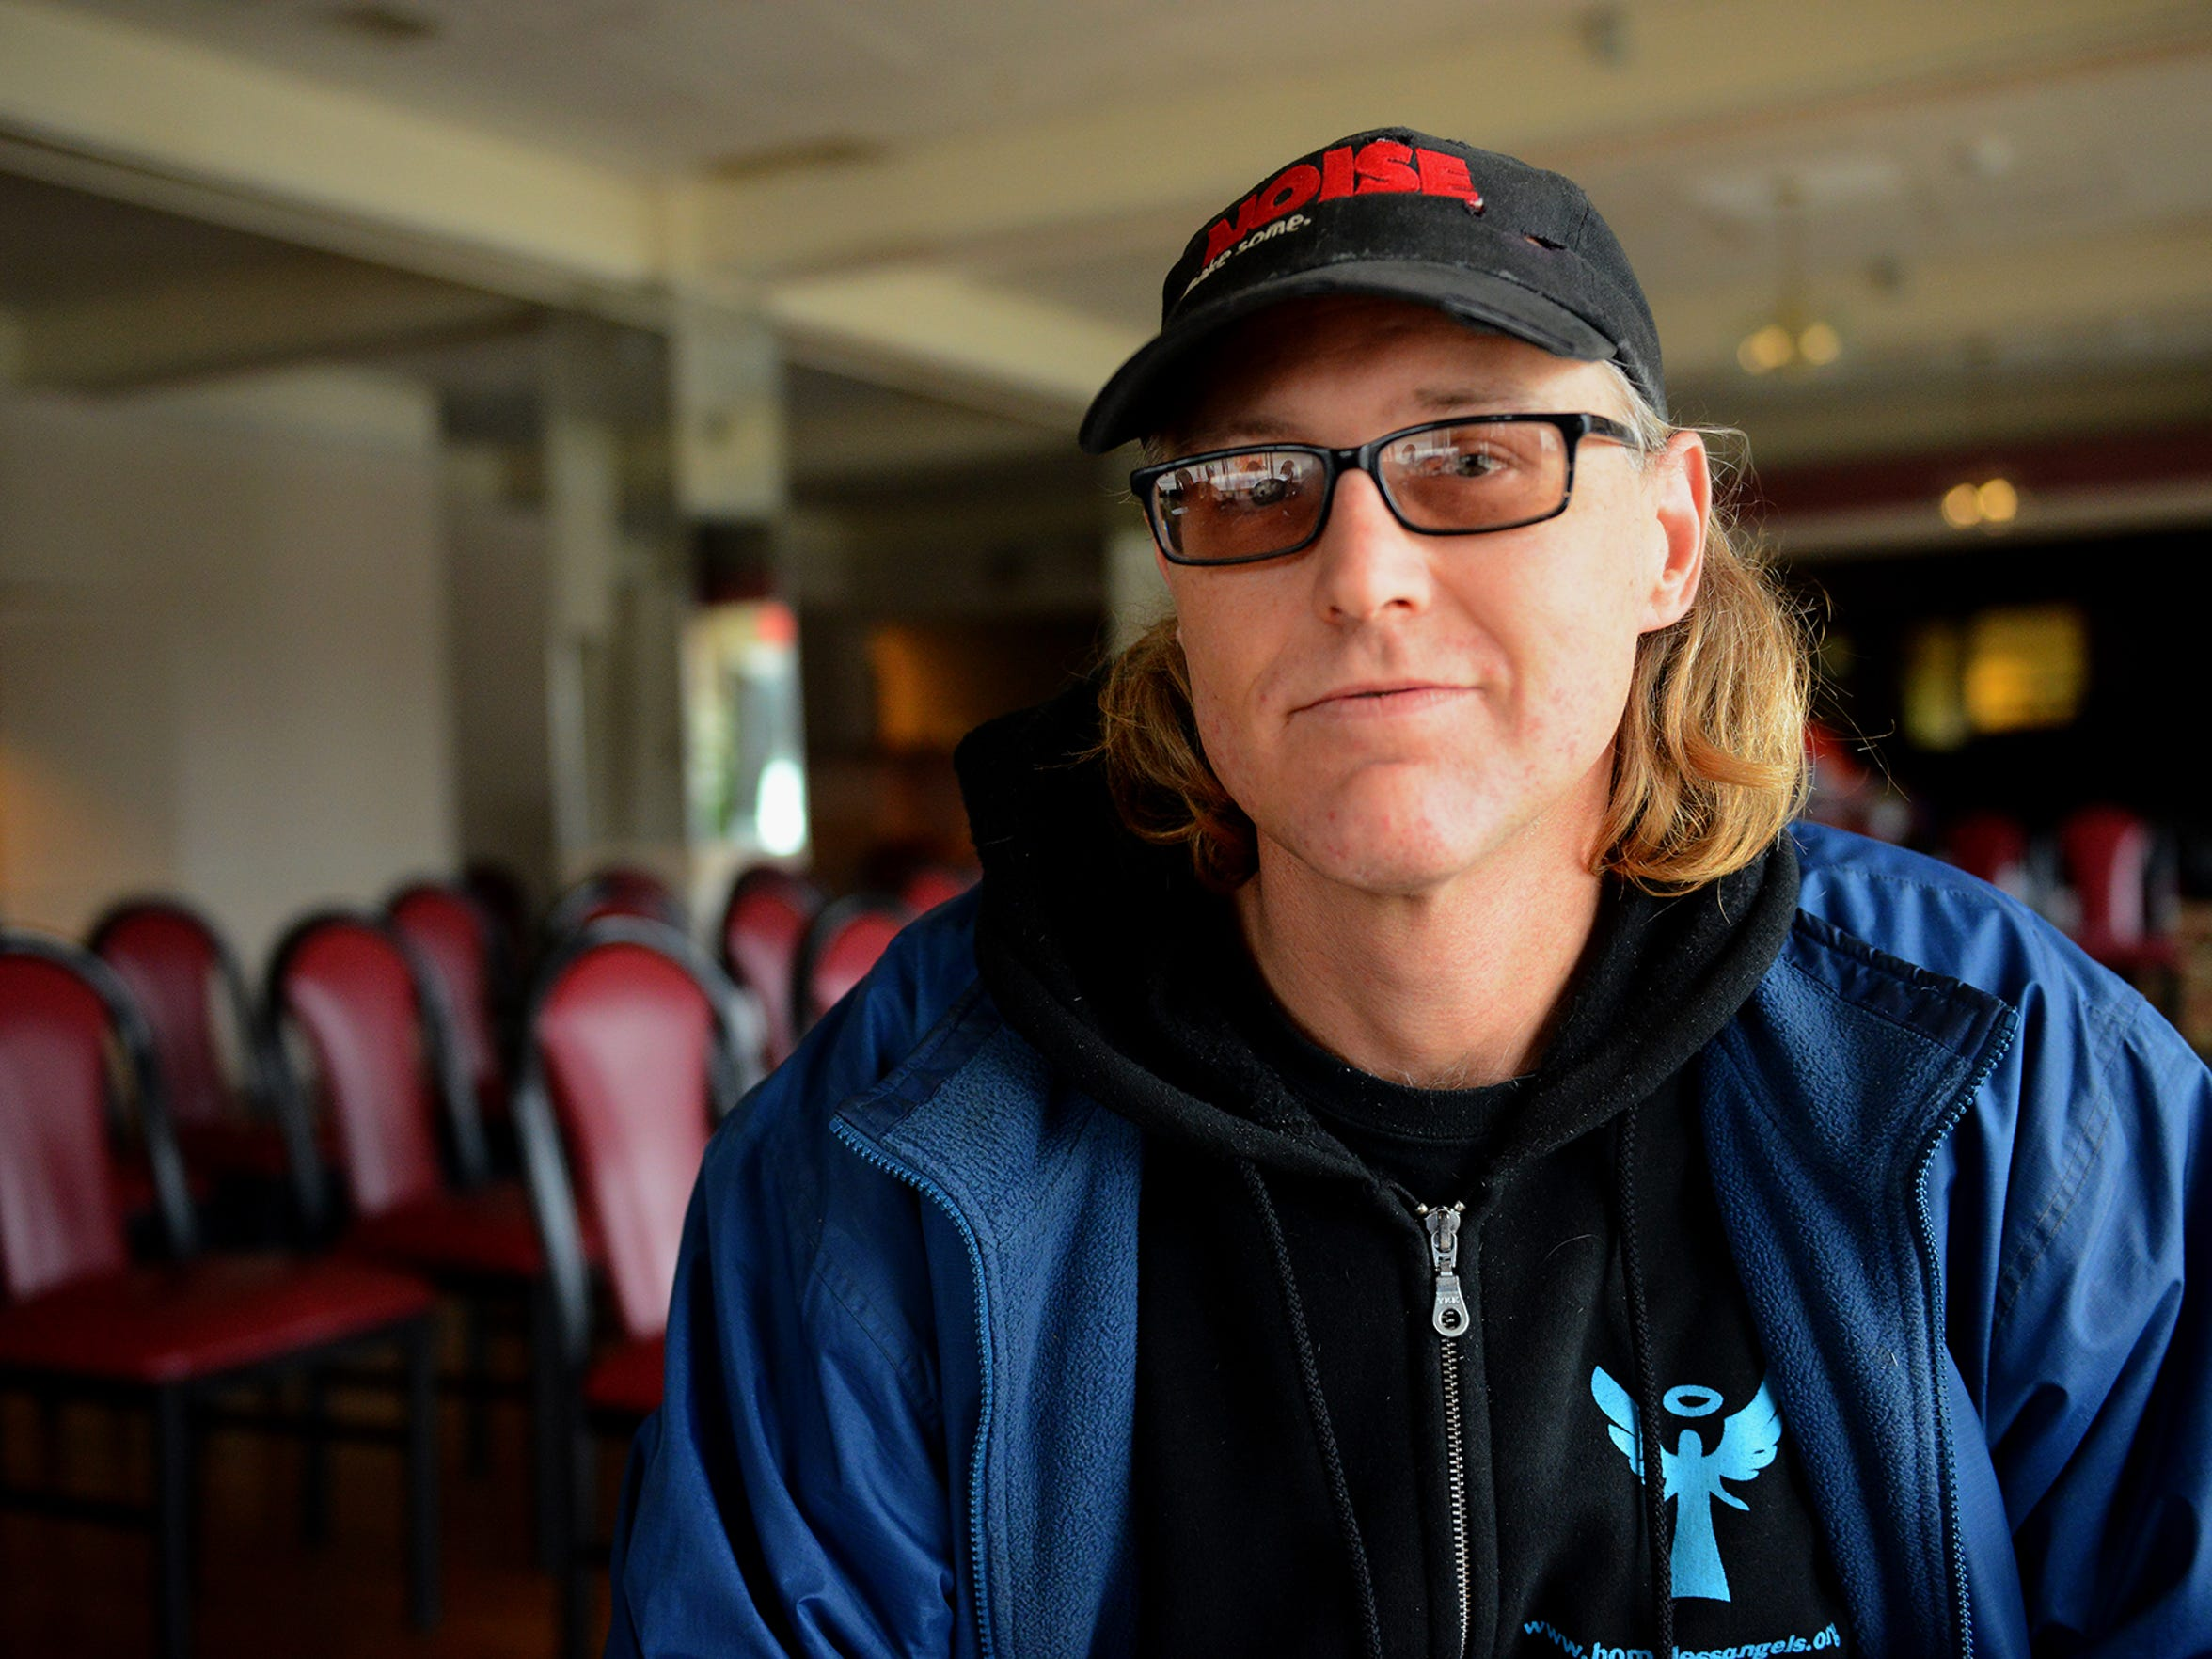 """Michael """"Cookie"""" Johns sits for a photograph at the Magnuson Hotel in south Lansing Wednesday, Dec. 16. Johns has been homeless for the last 20 years he now does maintenance and work around the hotel while staying there through the non-profit Homeless Angels."""